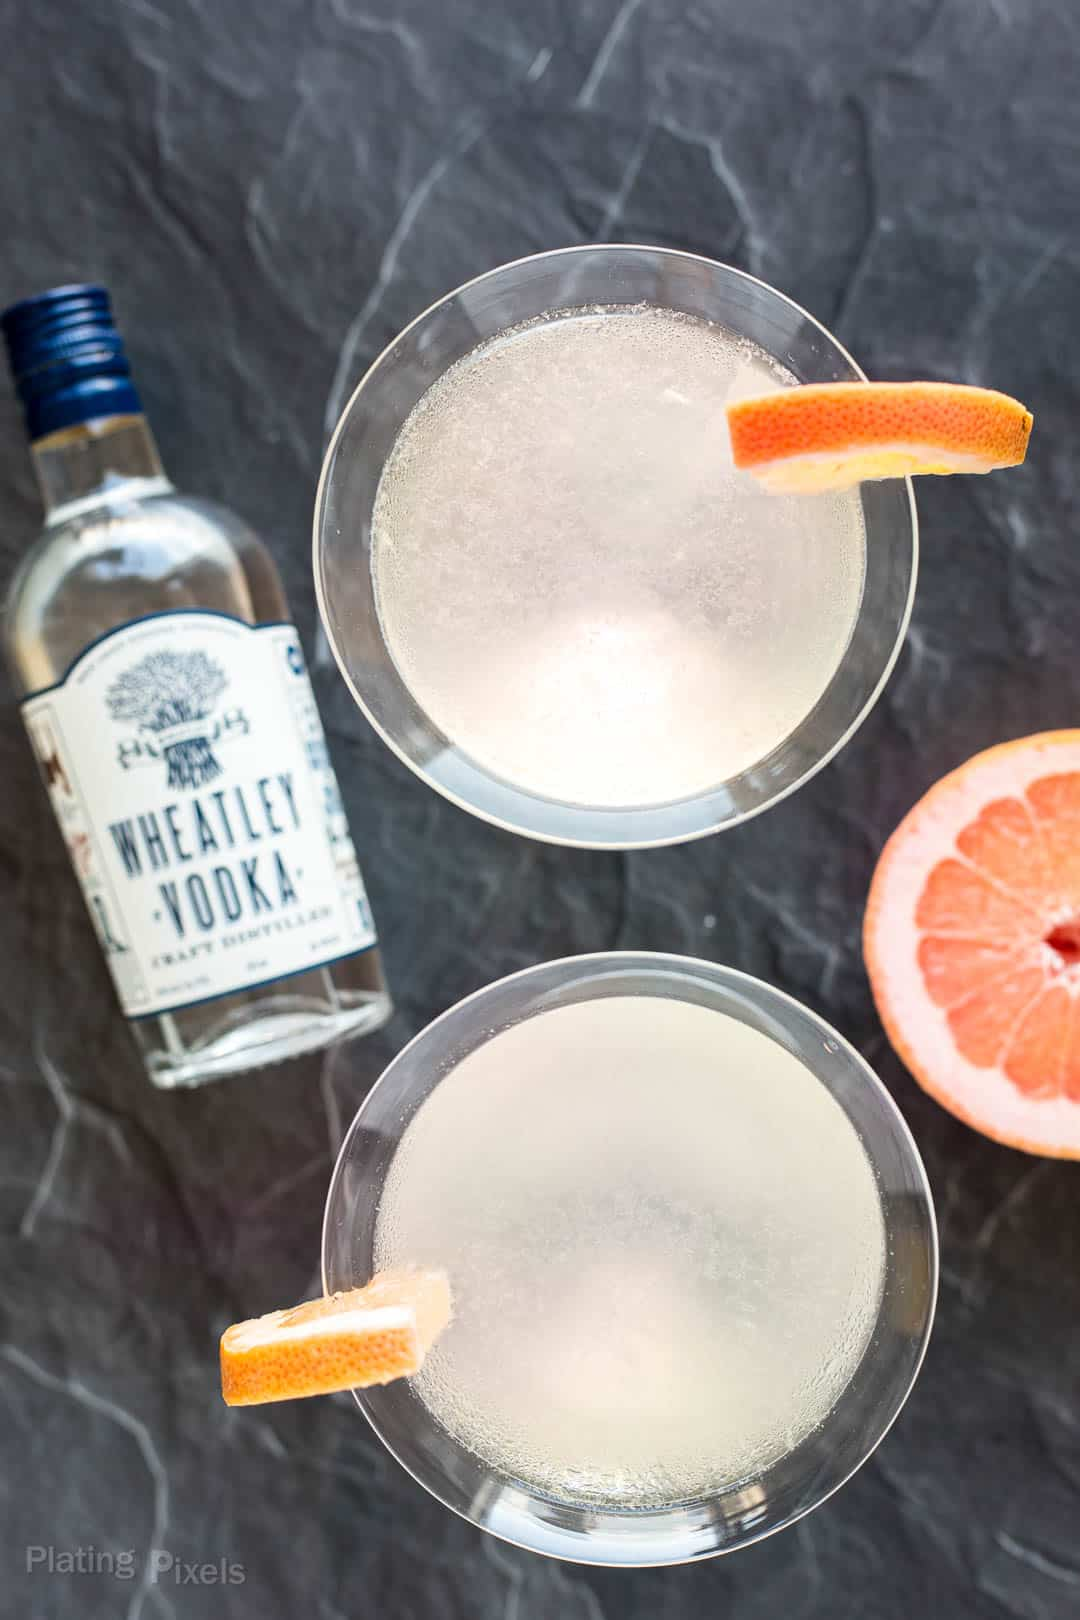 Overhead shot of Grapefruit Martinis next to a bottle of Wheatley Vodka